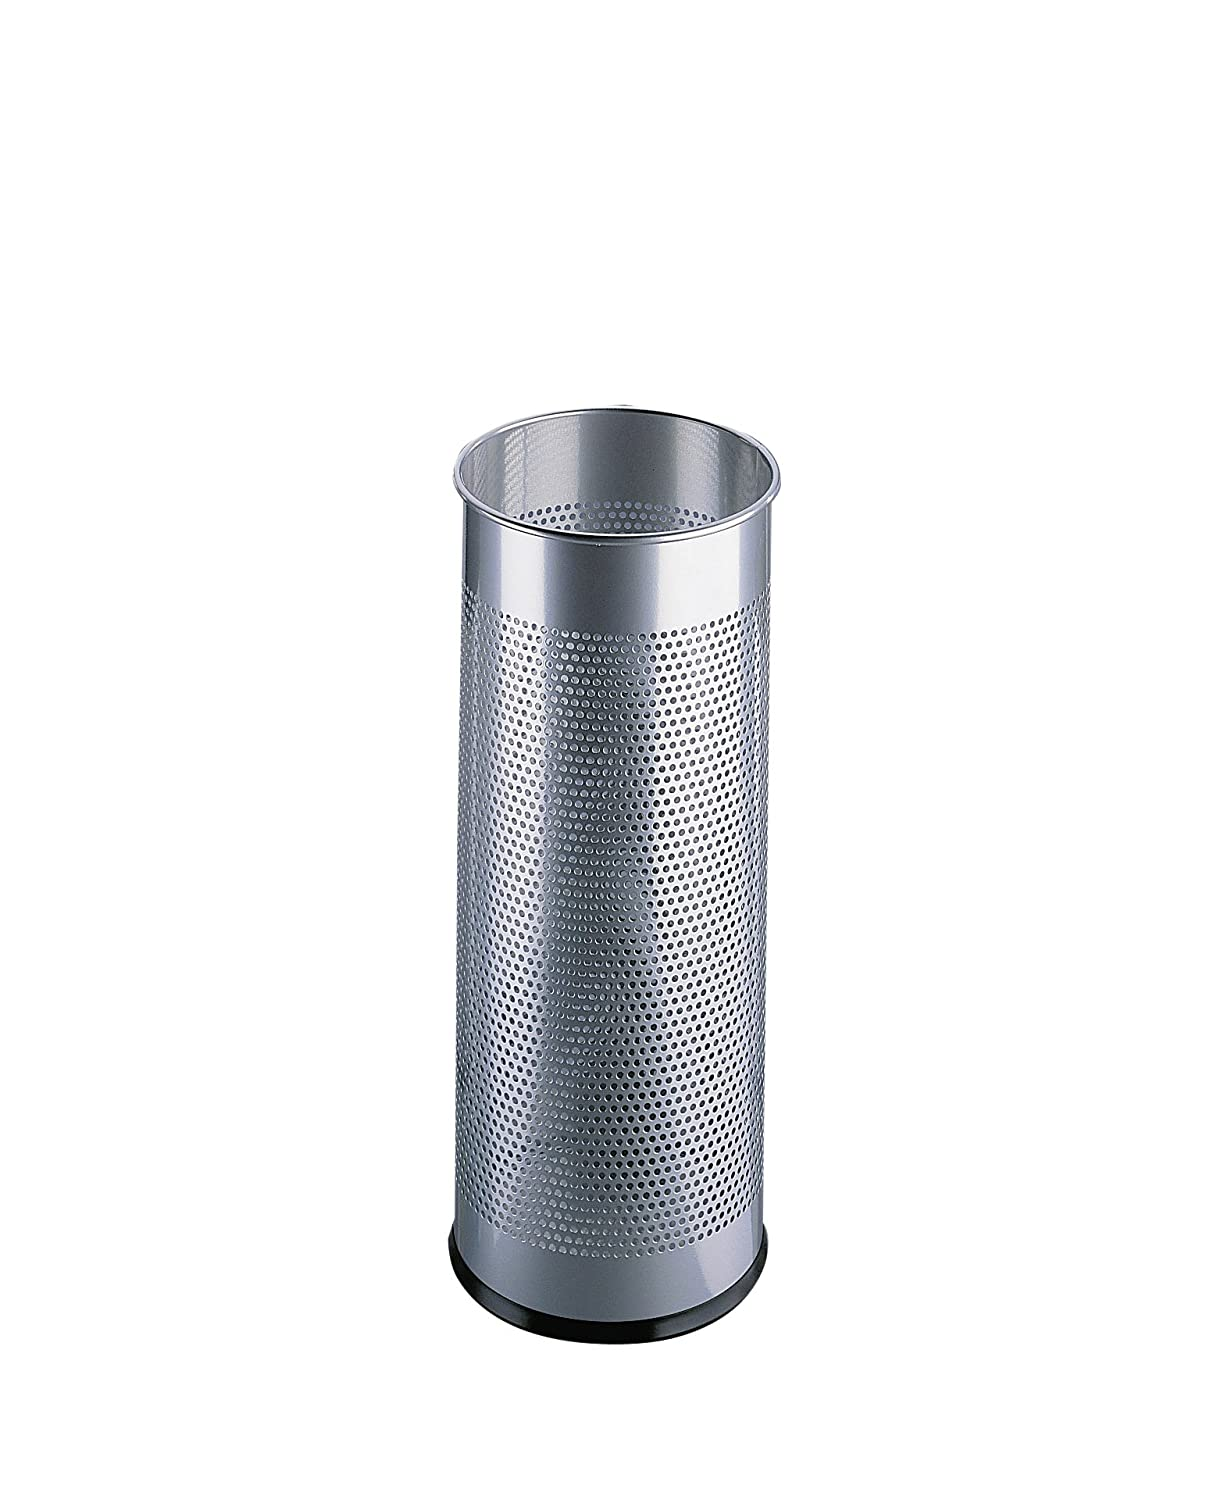 Durable Atlanta Umbrella Stand Tubular Metal Perforated 28.5 Litre - Silver Ref A2900-02618 Atlanta Office Products Ltd 335023